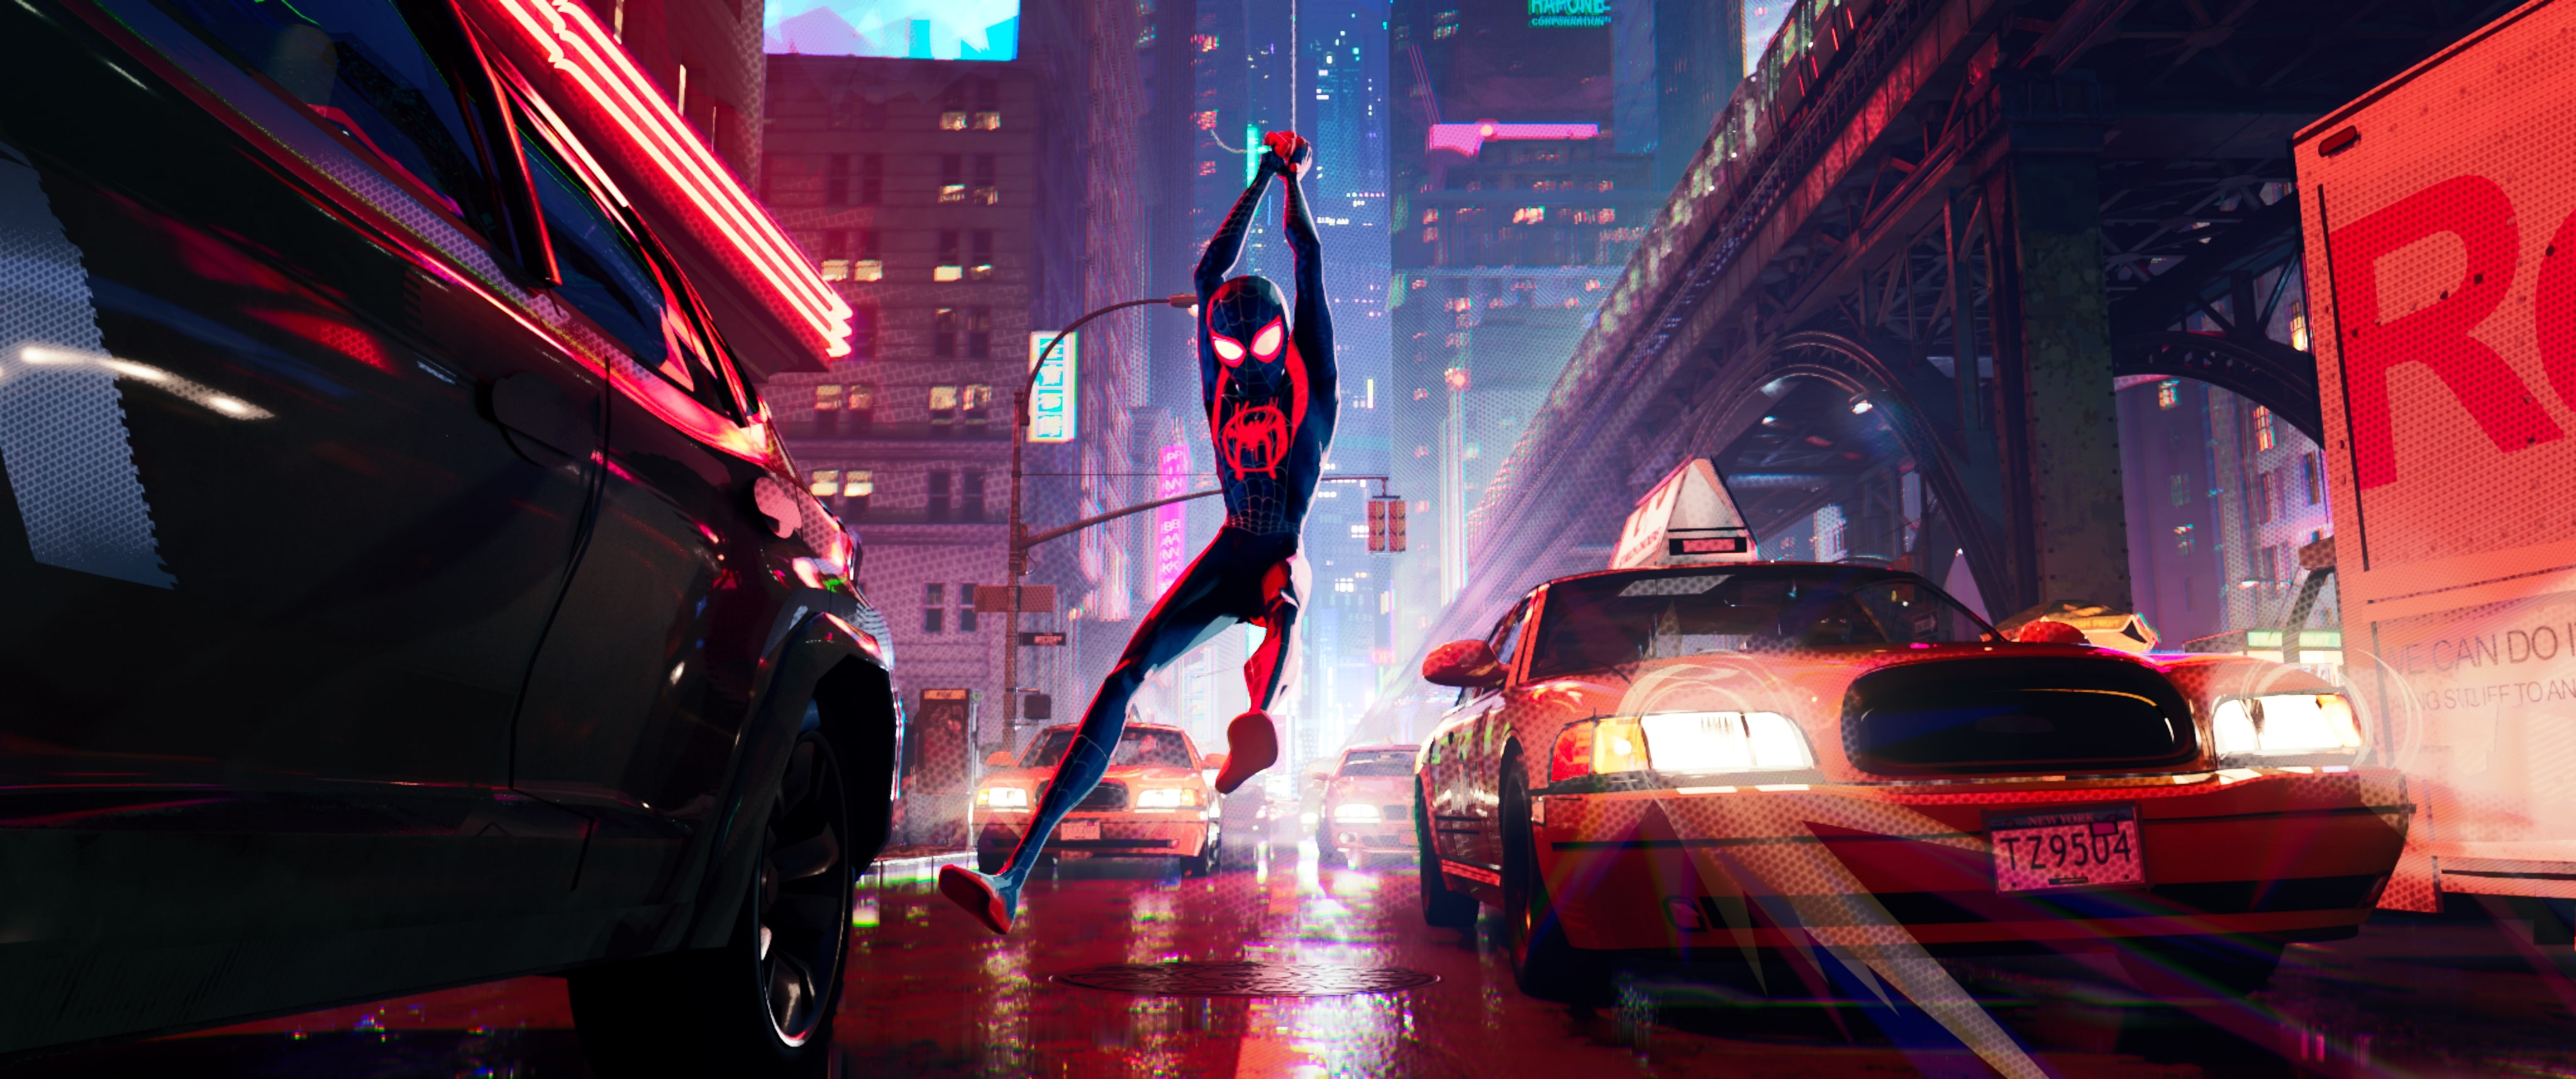 Spider-Verse has secret roots in an unlikely video game, reveals comics writer